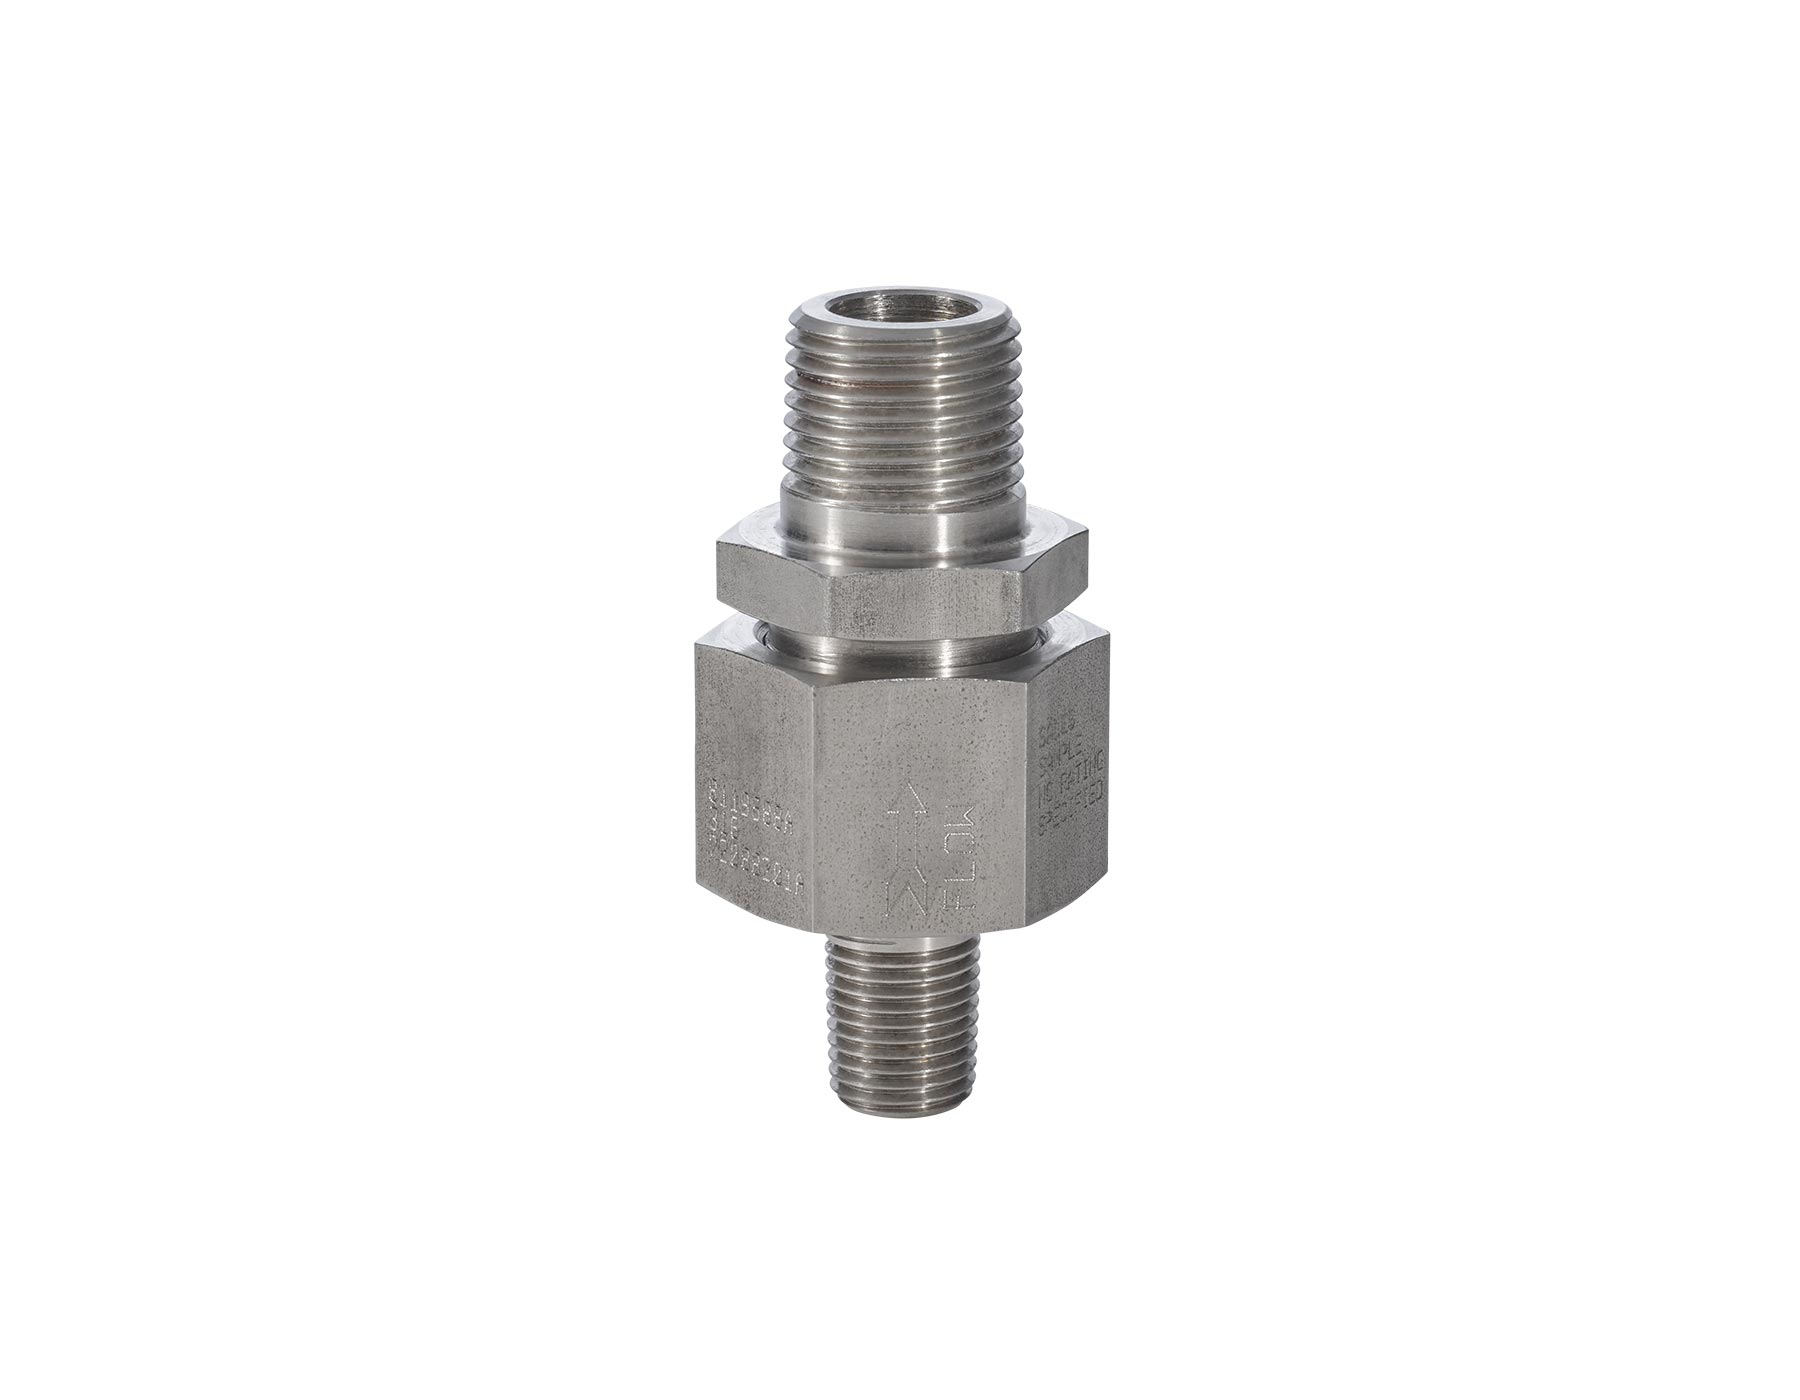 Screw-Type and Tite-Seal Rupture Disc Holder Assemblies